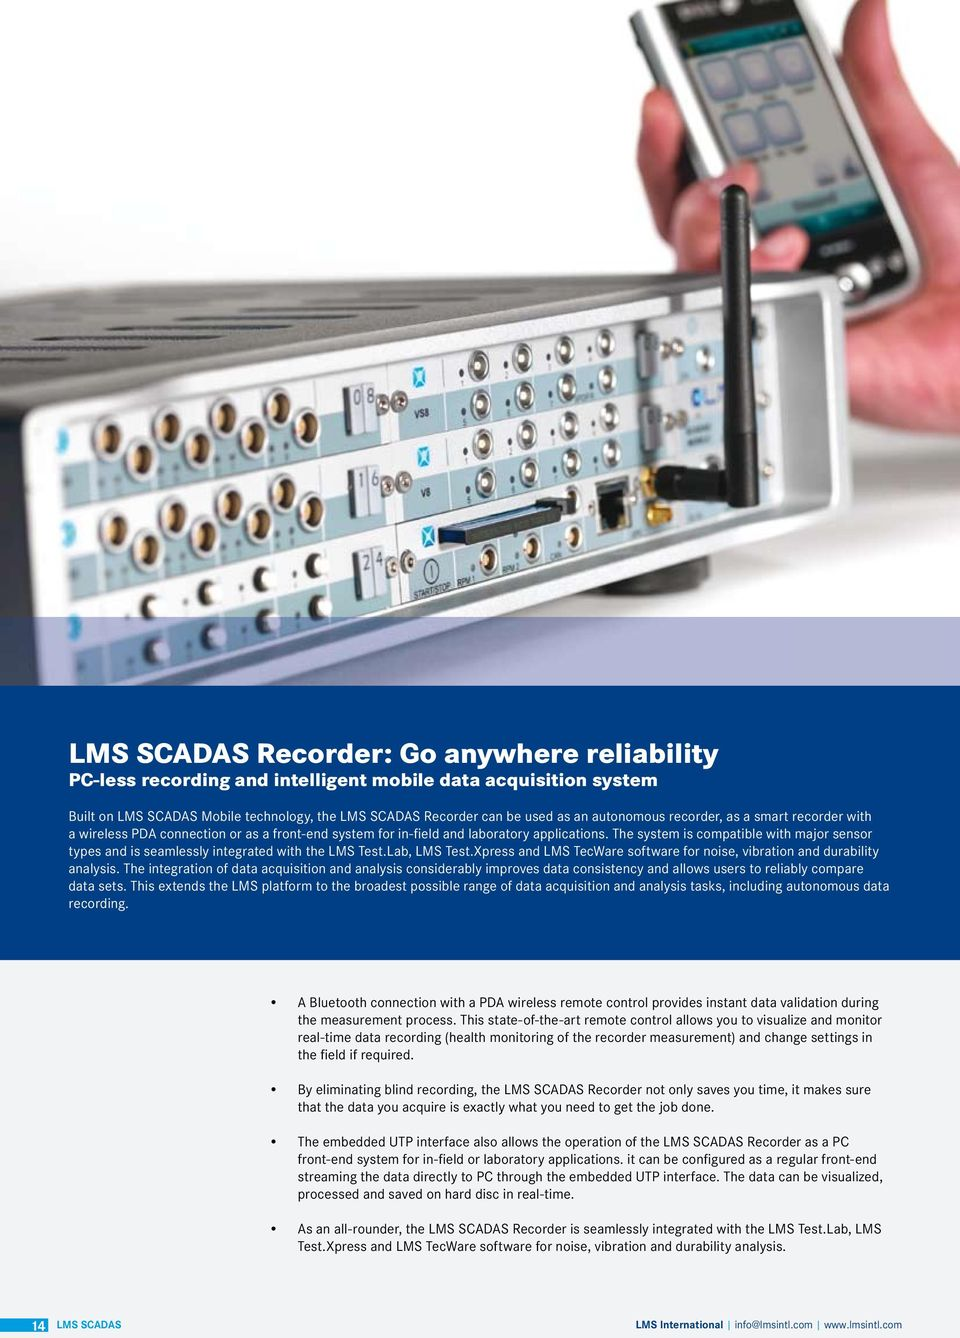 Lms Scadas Versatile High Performance Data Acquisition Systems Pdf Hardware Circuit Of Pcbased Logger Is Designed Around Analog The System Compatible With Major Sensor Types And Seamlessly Integrated Test